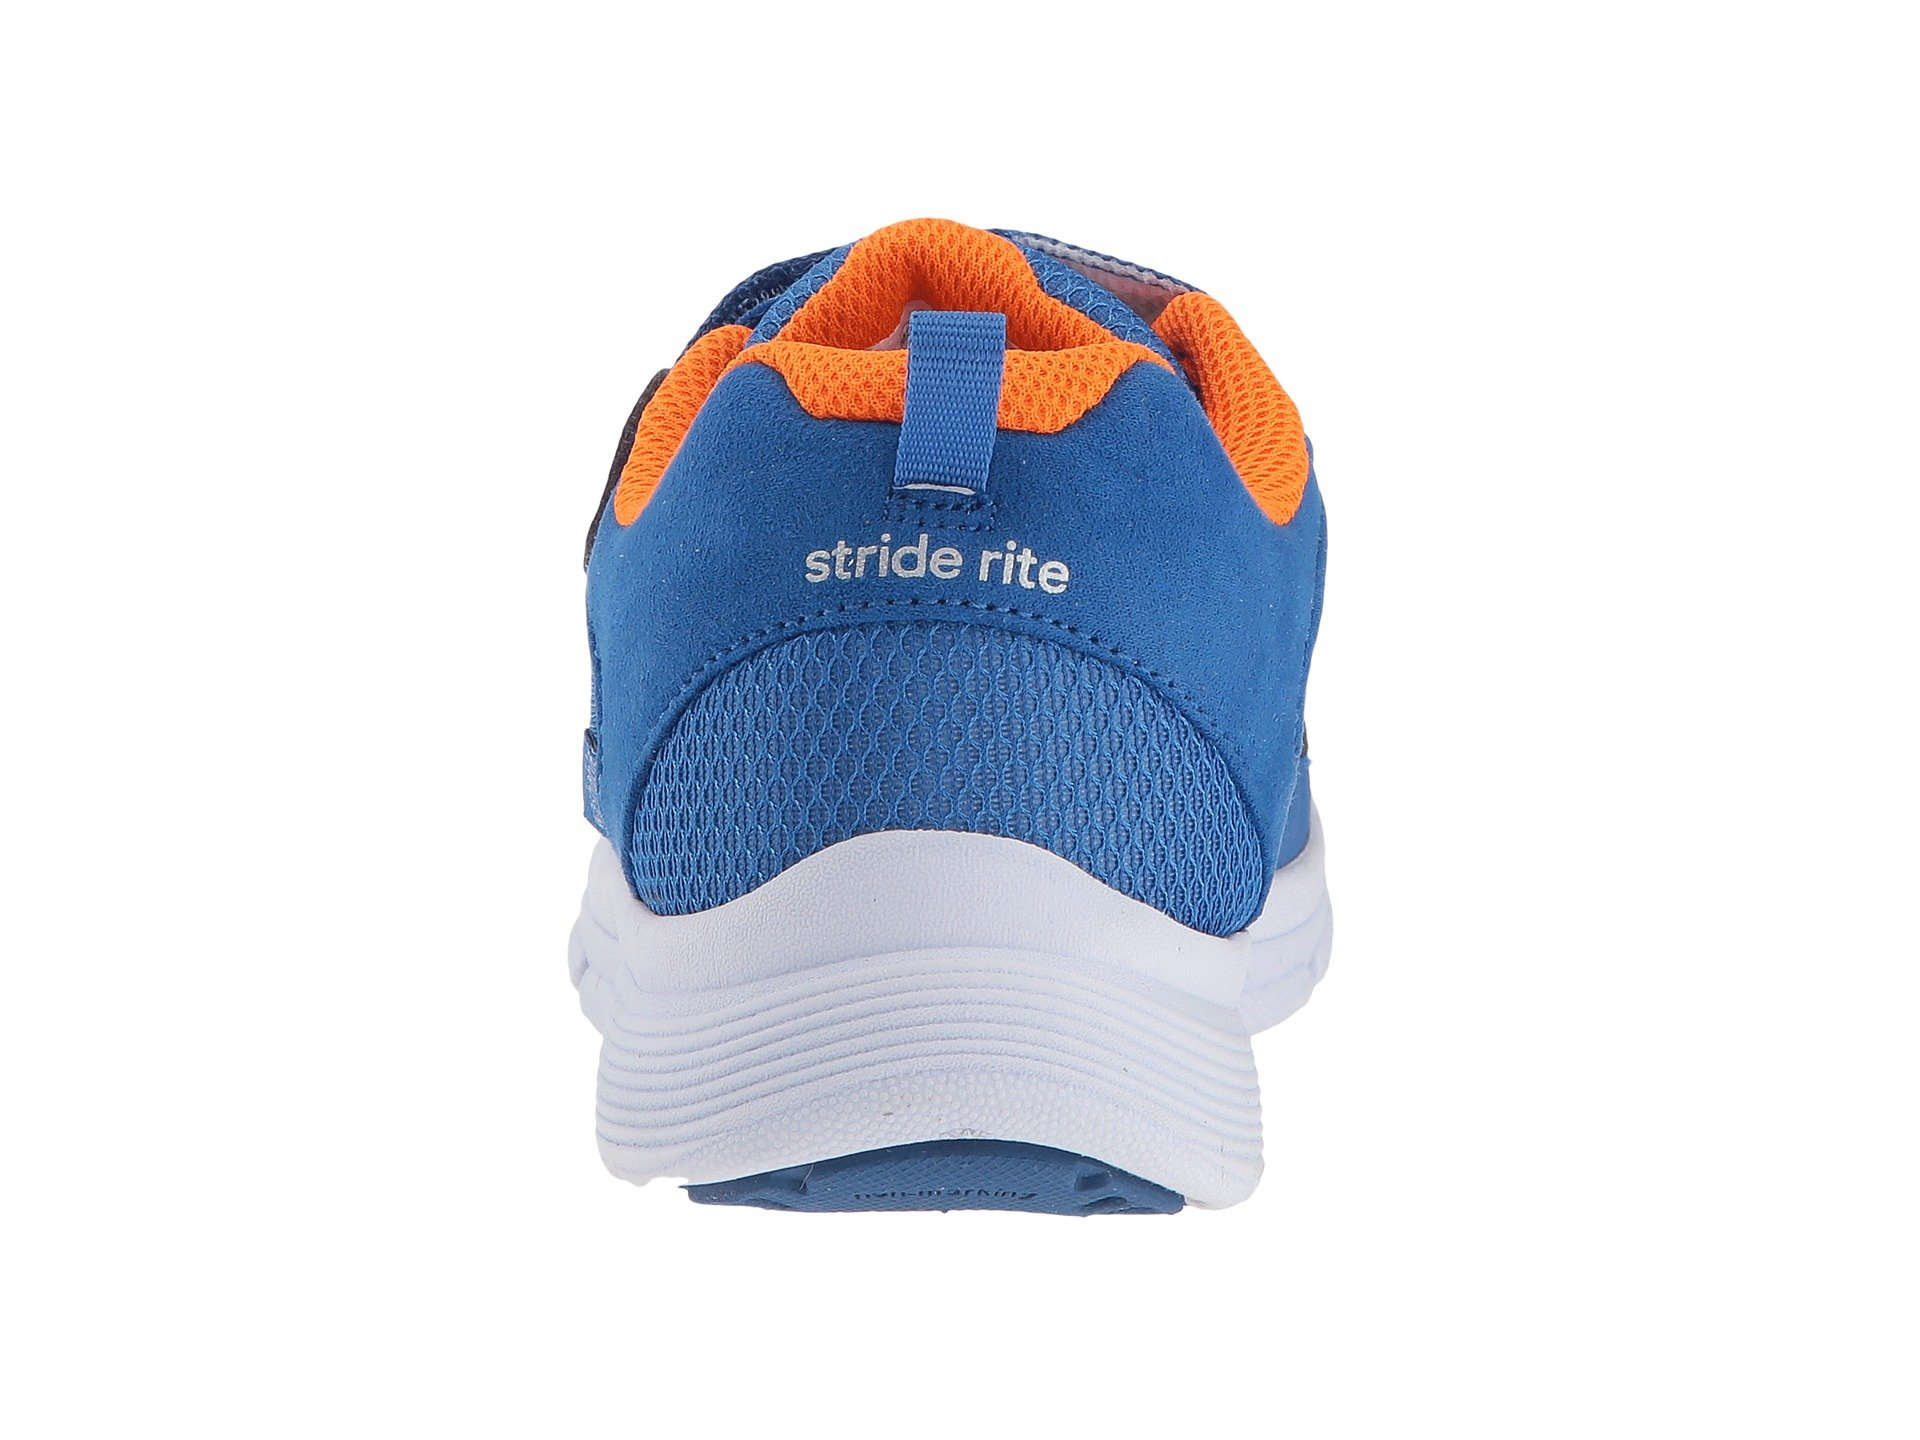 Stride Rite Mens Made 2 Play Taylor (Toddler/Little Kid) Royal 5.5 Toddler M by Stride Rite (Image #3)